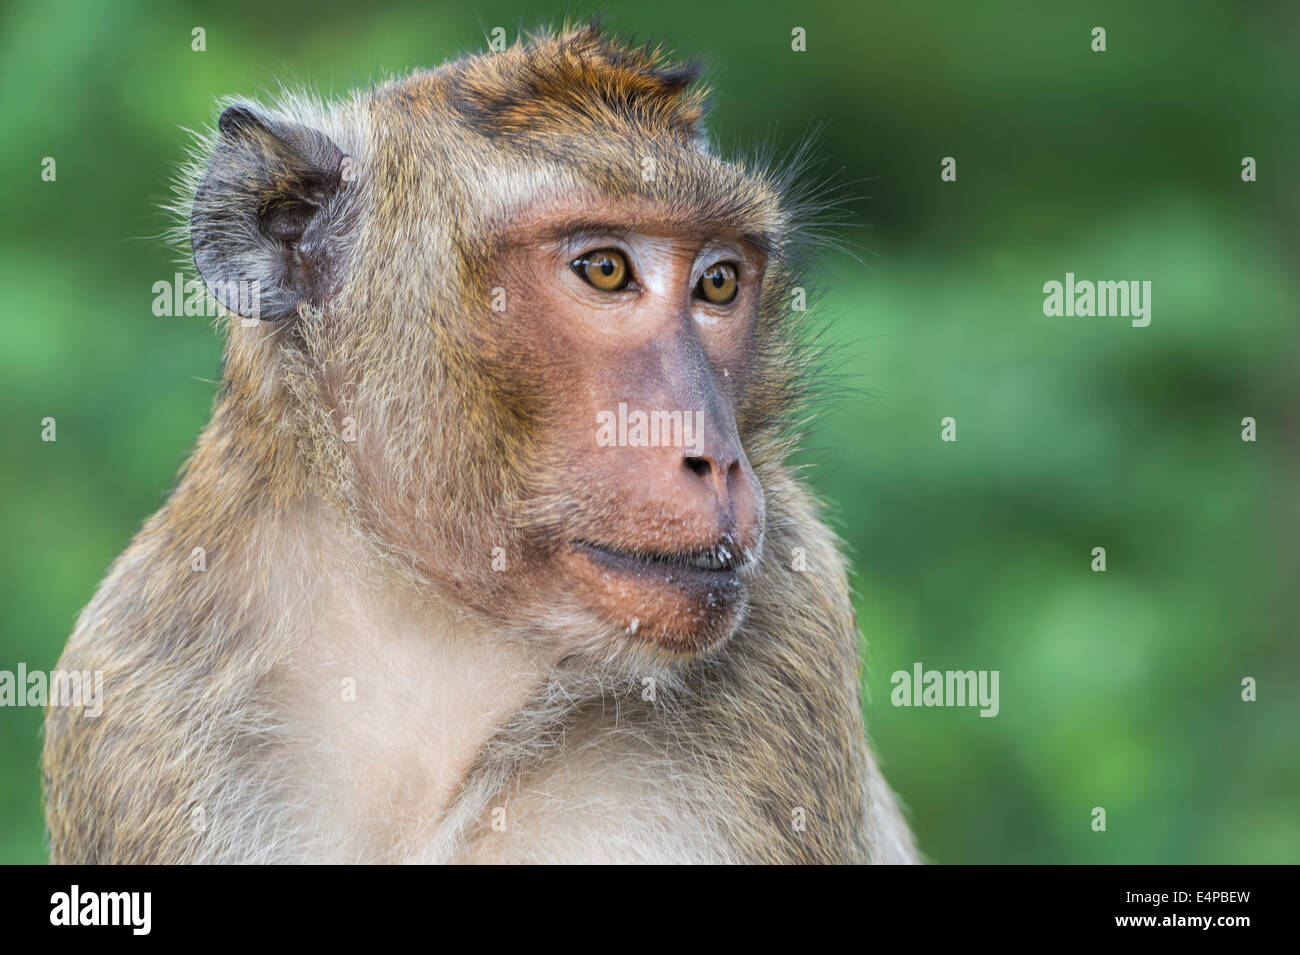 Long-tailed Macaque or Crab-eating Macaque (Macaca fascicularis), Thailand, Asia - Stock Image